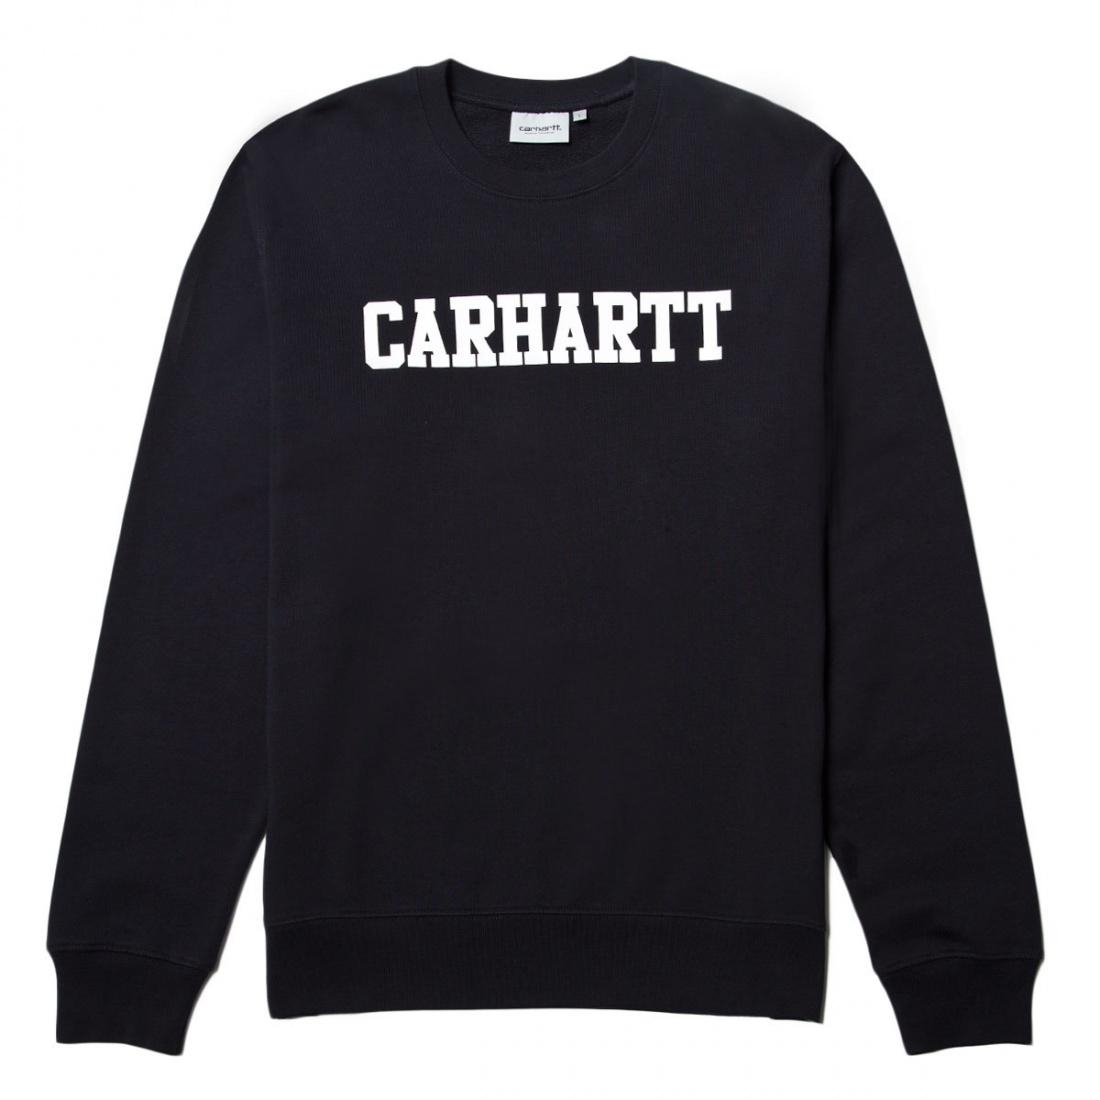 Carhartt Свитшот Carhartt WIP Dark Navy/White M футболка женская carhartt wip carrie yale ash heather